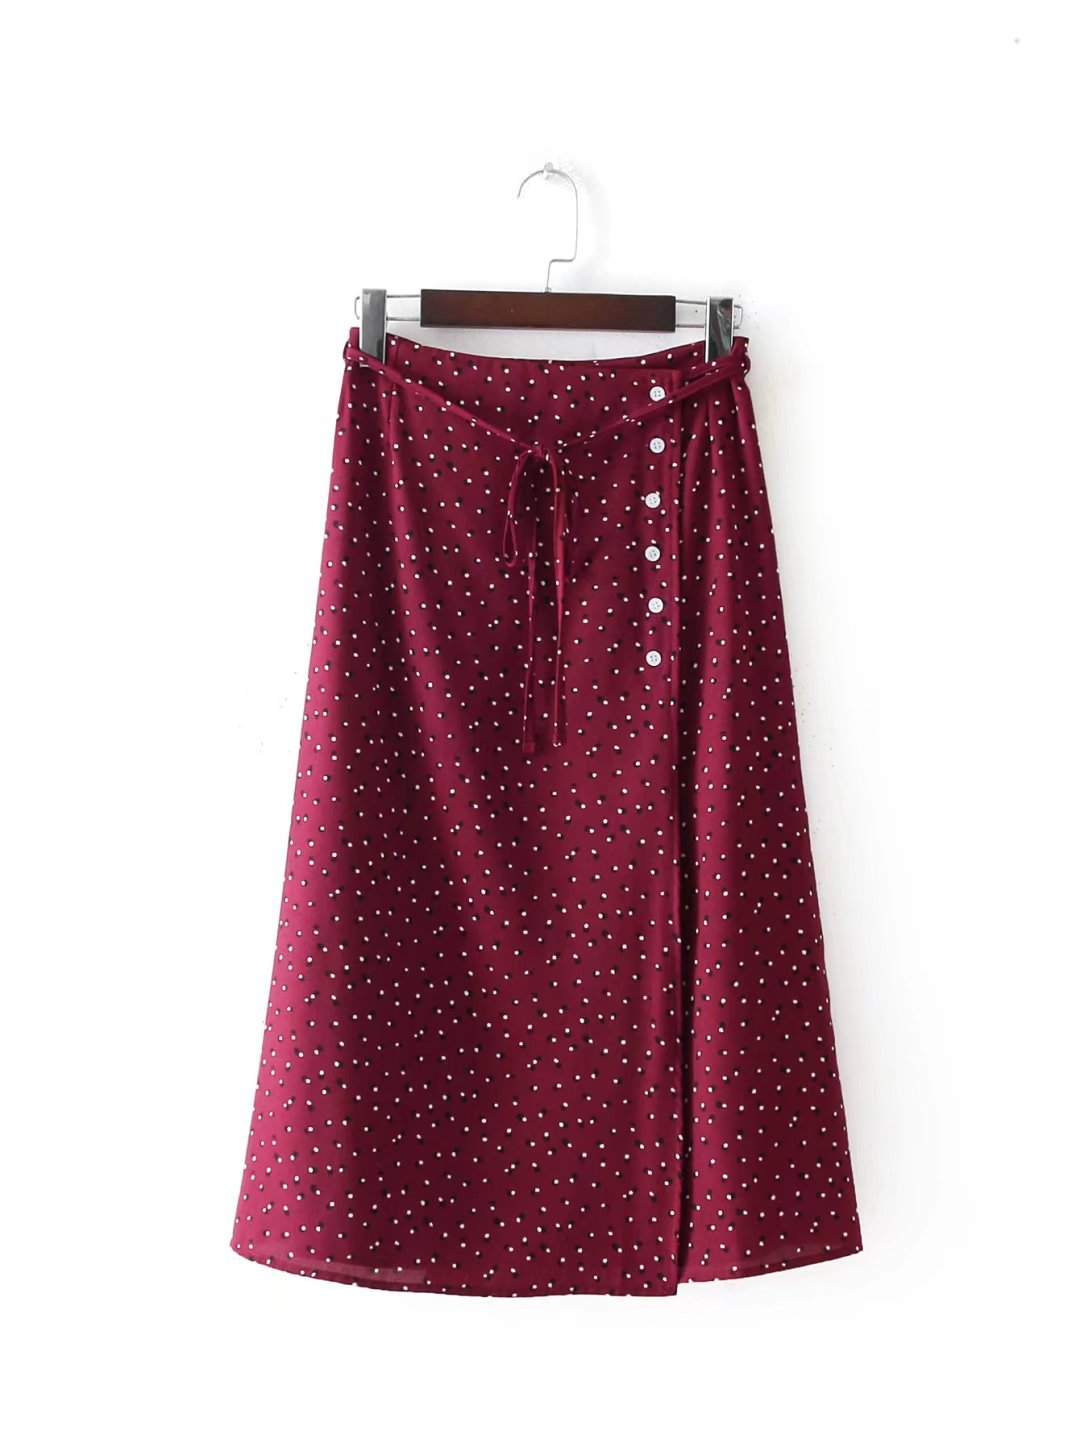 Women Sweet Bow Tie Polka Dots Wrap Skirt Falda Mujer Buttons Vintage Ladies Casual Chic Mid Calf Skirts